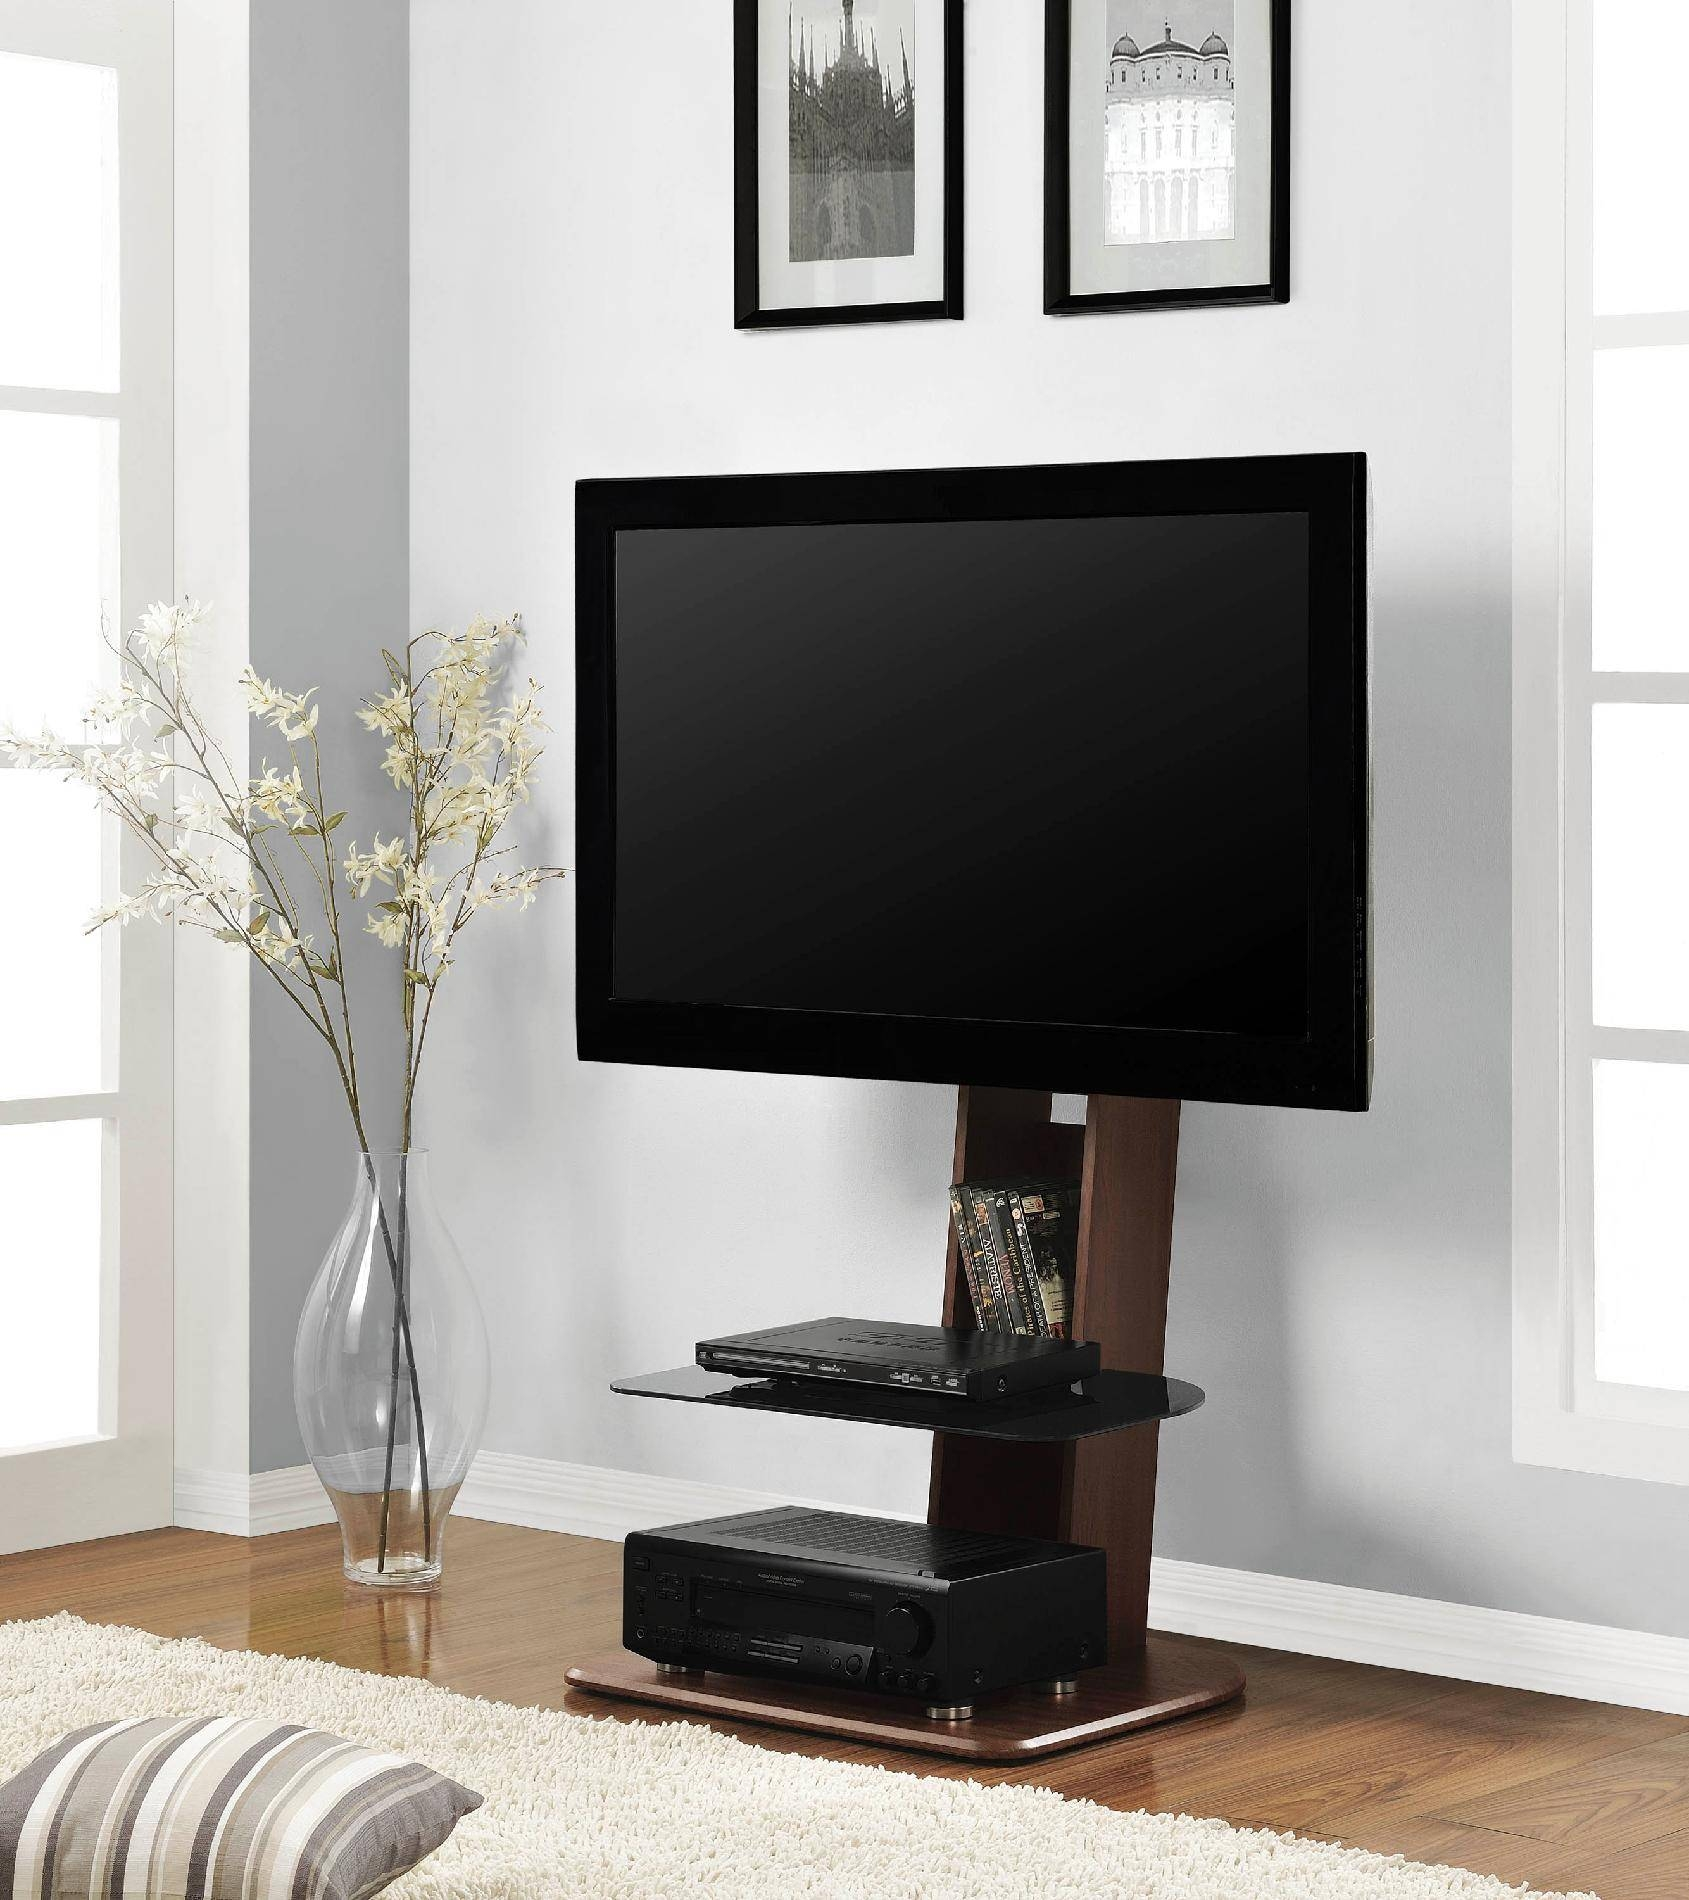 Corner Tv Stand For 60 Inch Flat Screen Tv pertaining to Corner Tv Stands For 60 Inch Flat Screens (Image 2 of 15)